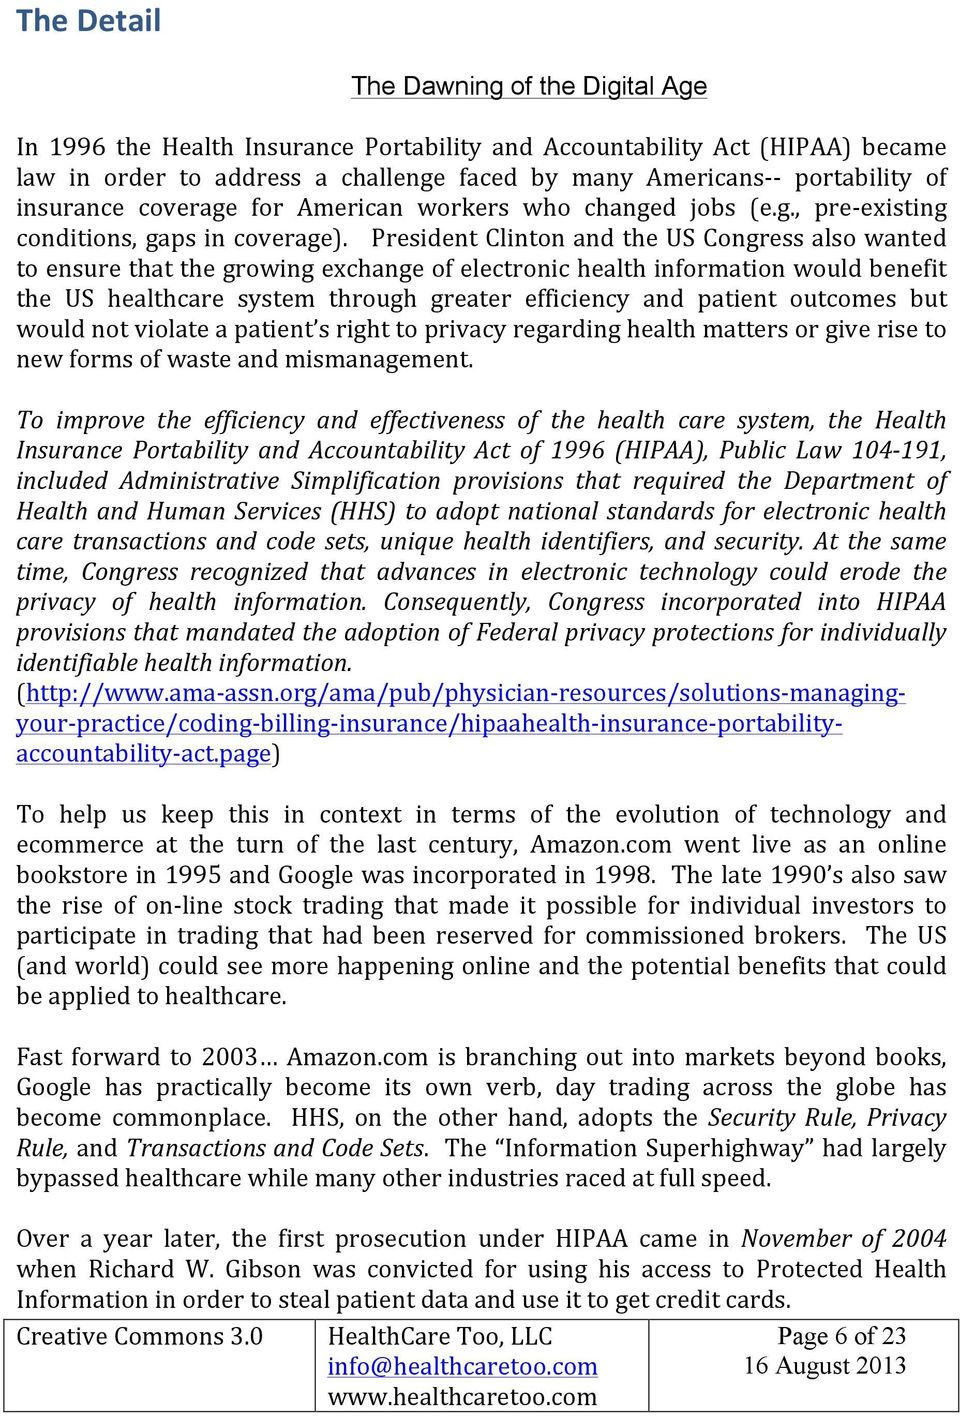 President Clinton and the US Congress also wanted to ensure that the growing exchange of electronic health information would benefit the US healthcare system through greater efficiency and patient